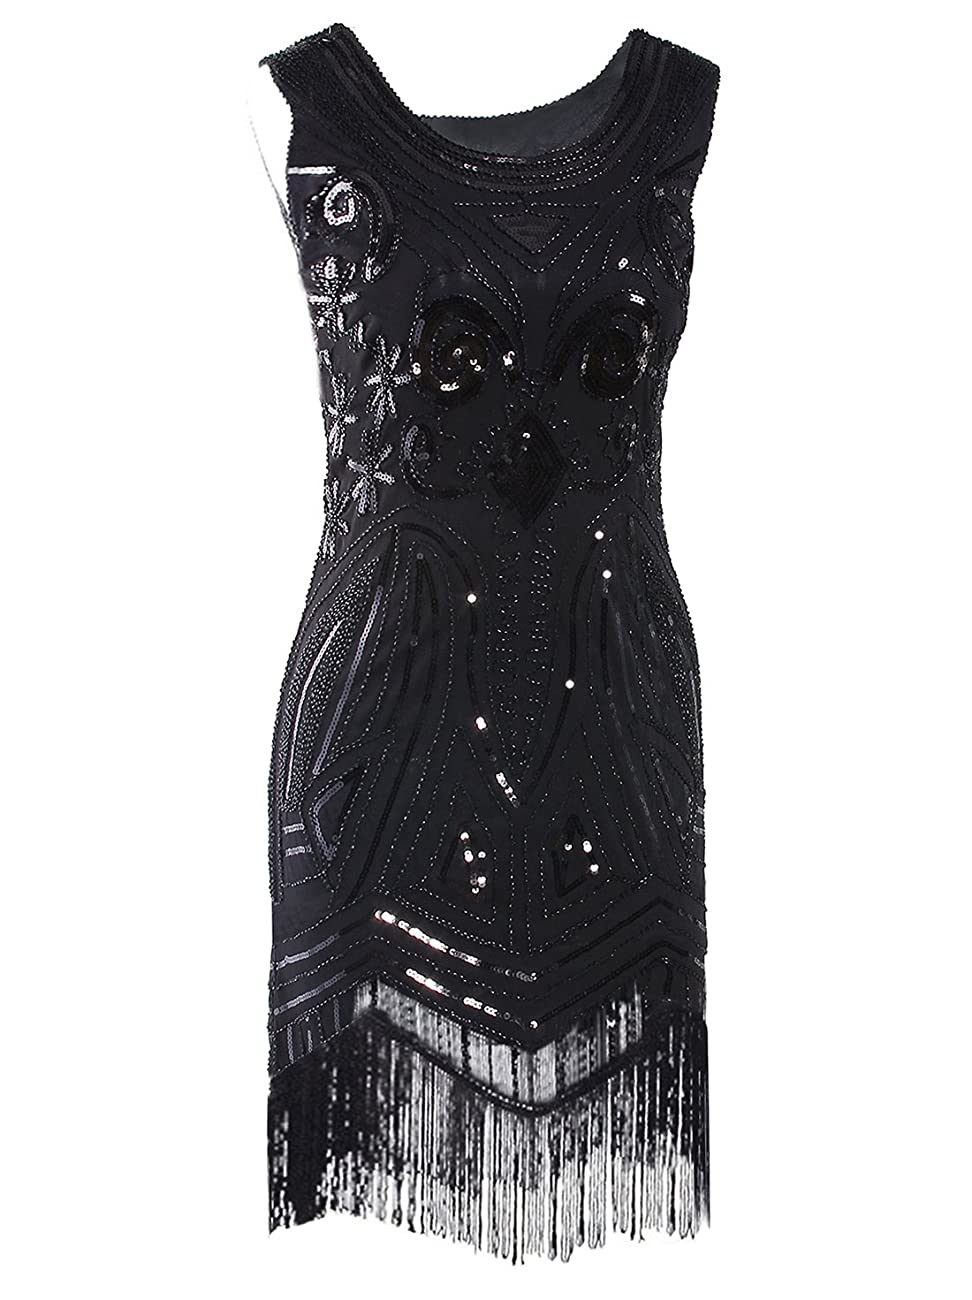 Vijiv Women's 1920's Vintage Gatsby Bead Sequin Art Nouveau Deco Flapper Dress 0